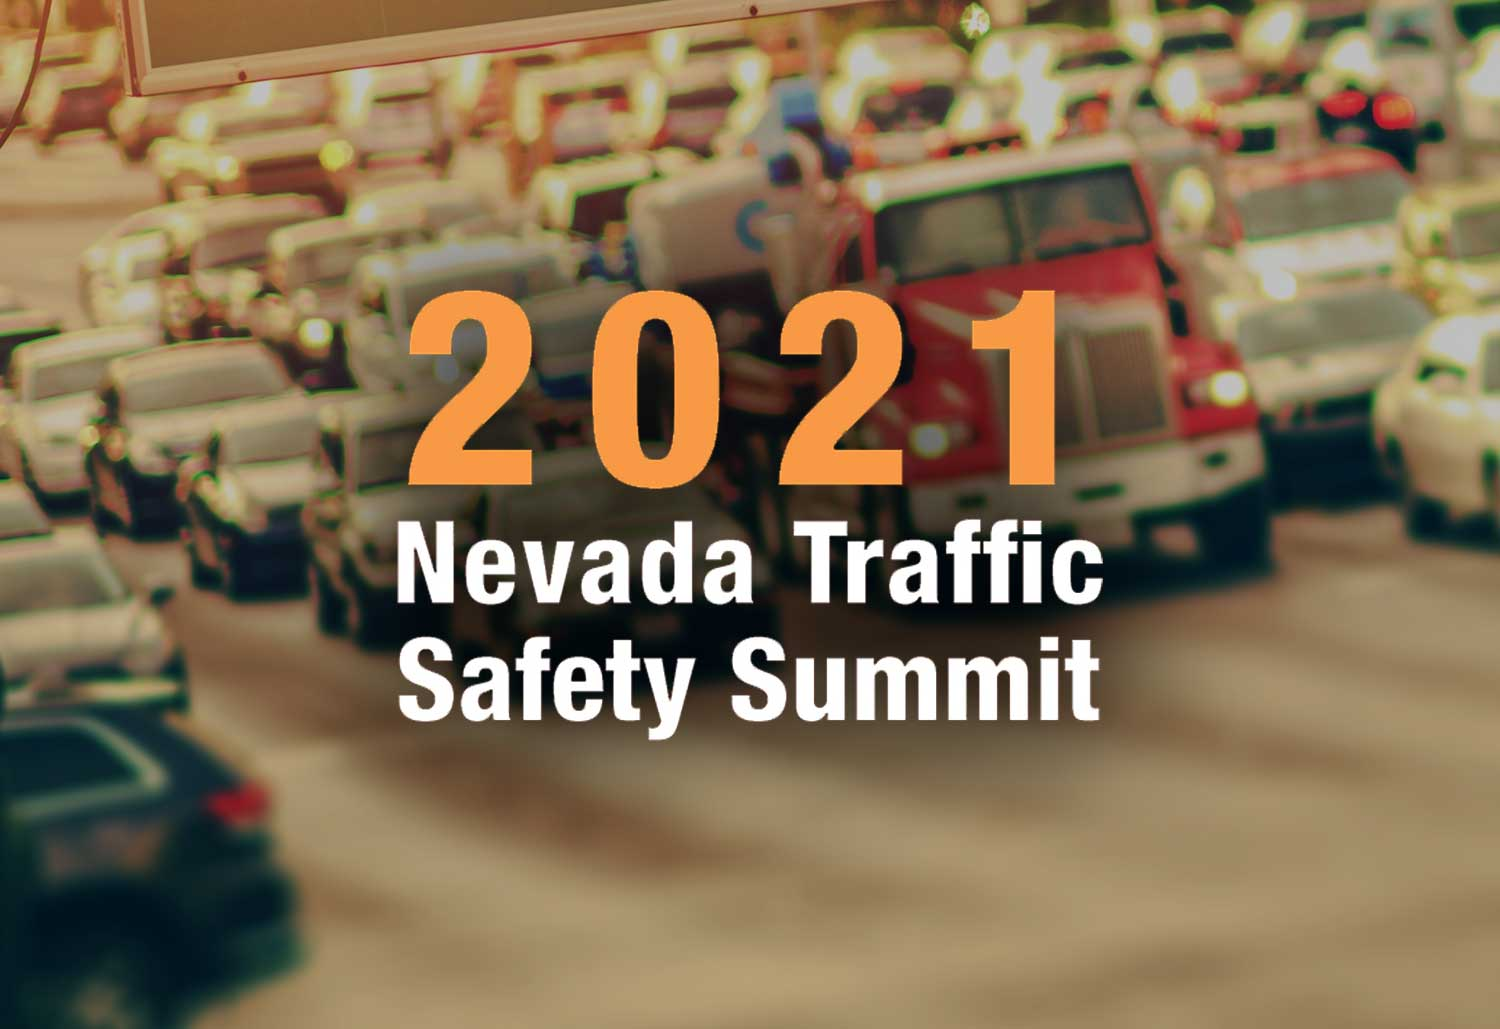 Rekor Subsidiary Waycare Wins Nevada Traffic Safety Project of the Year Award Together with the Nevada Highway Patrol and the Regional Transportation Commission of Southern Nevada